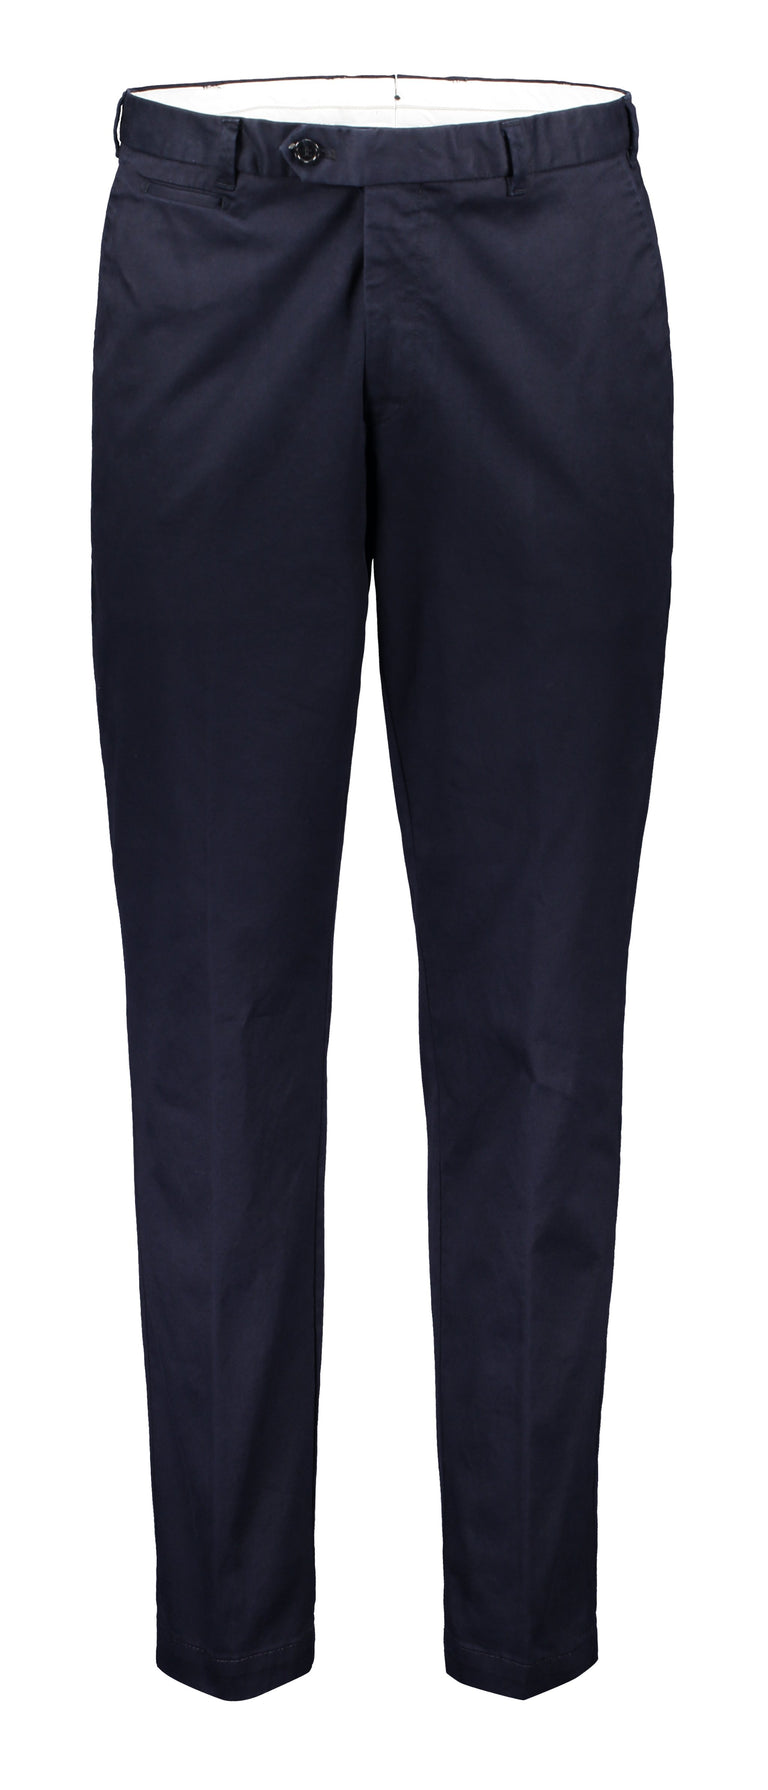 Columbus chinos in blue